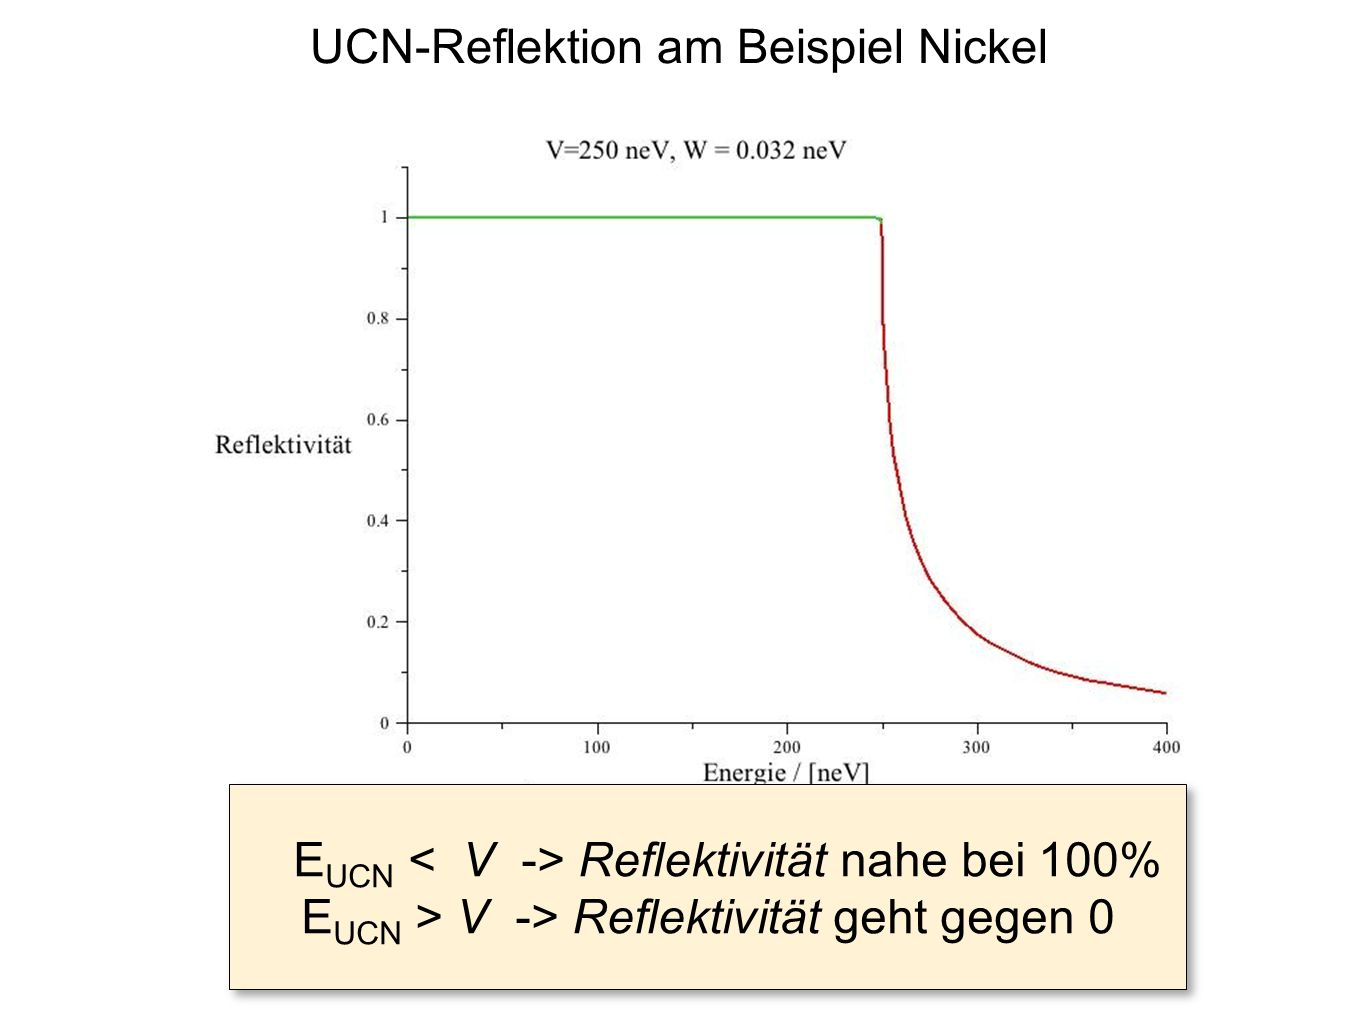 UCN-Reflektion am Beispiel Nickel